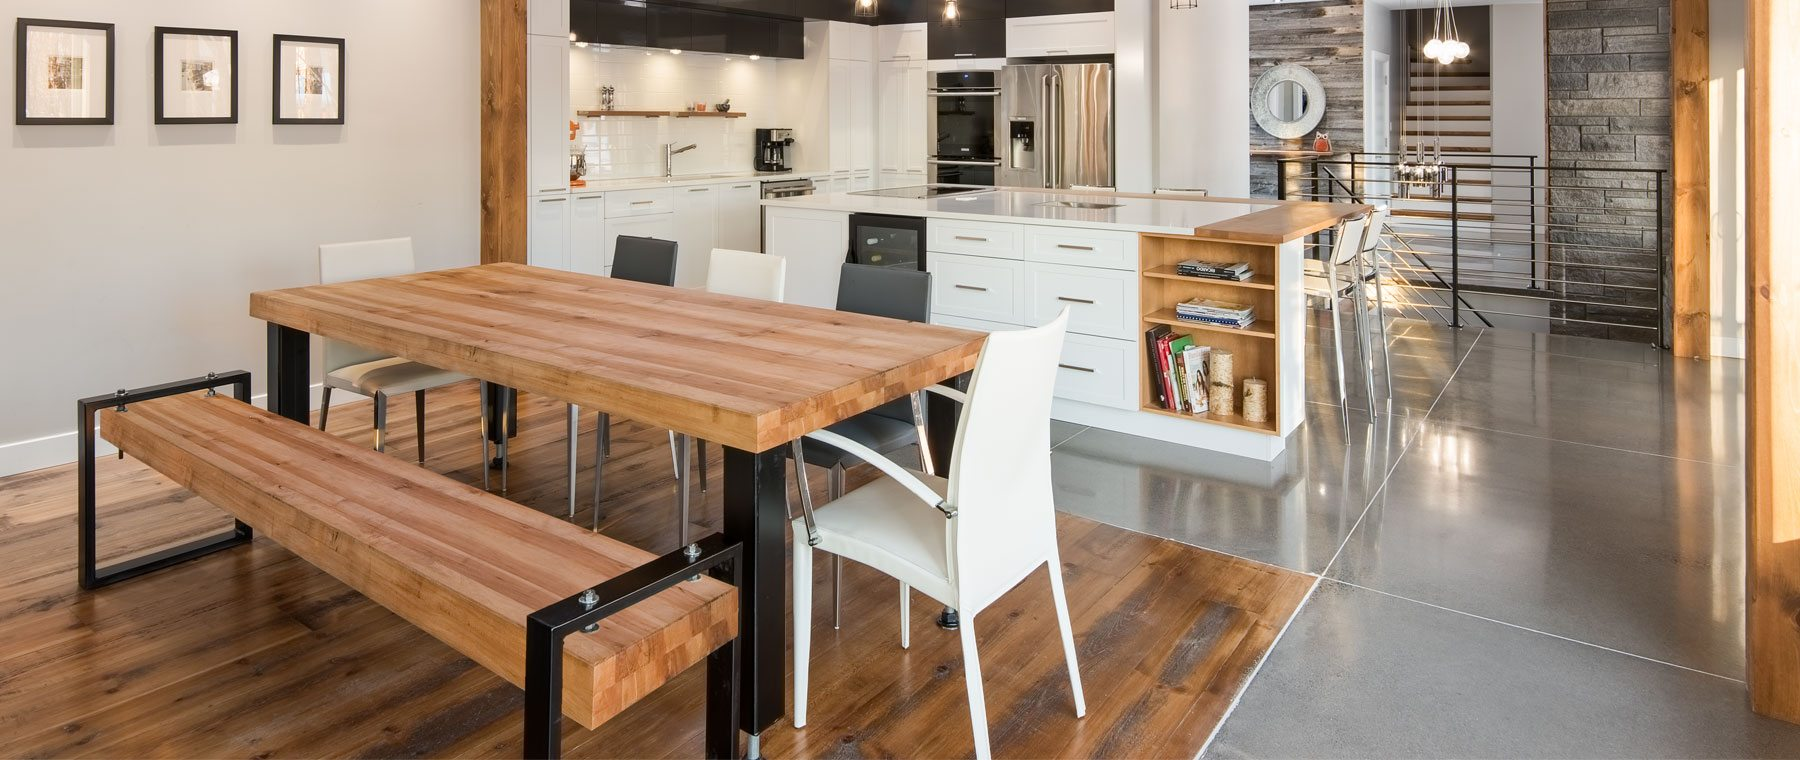 Great Space — Cantley bungalow both rustic and posh